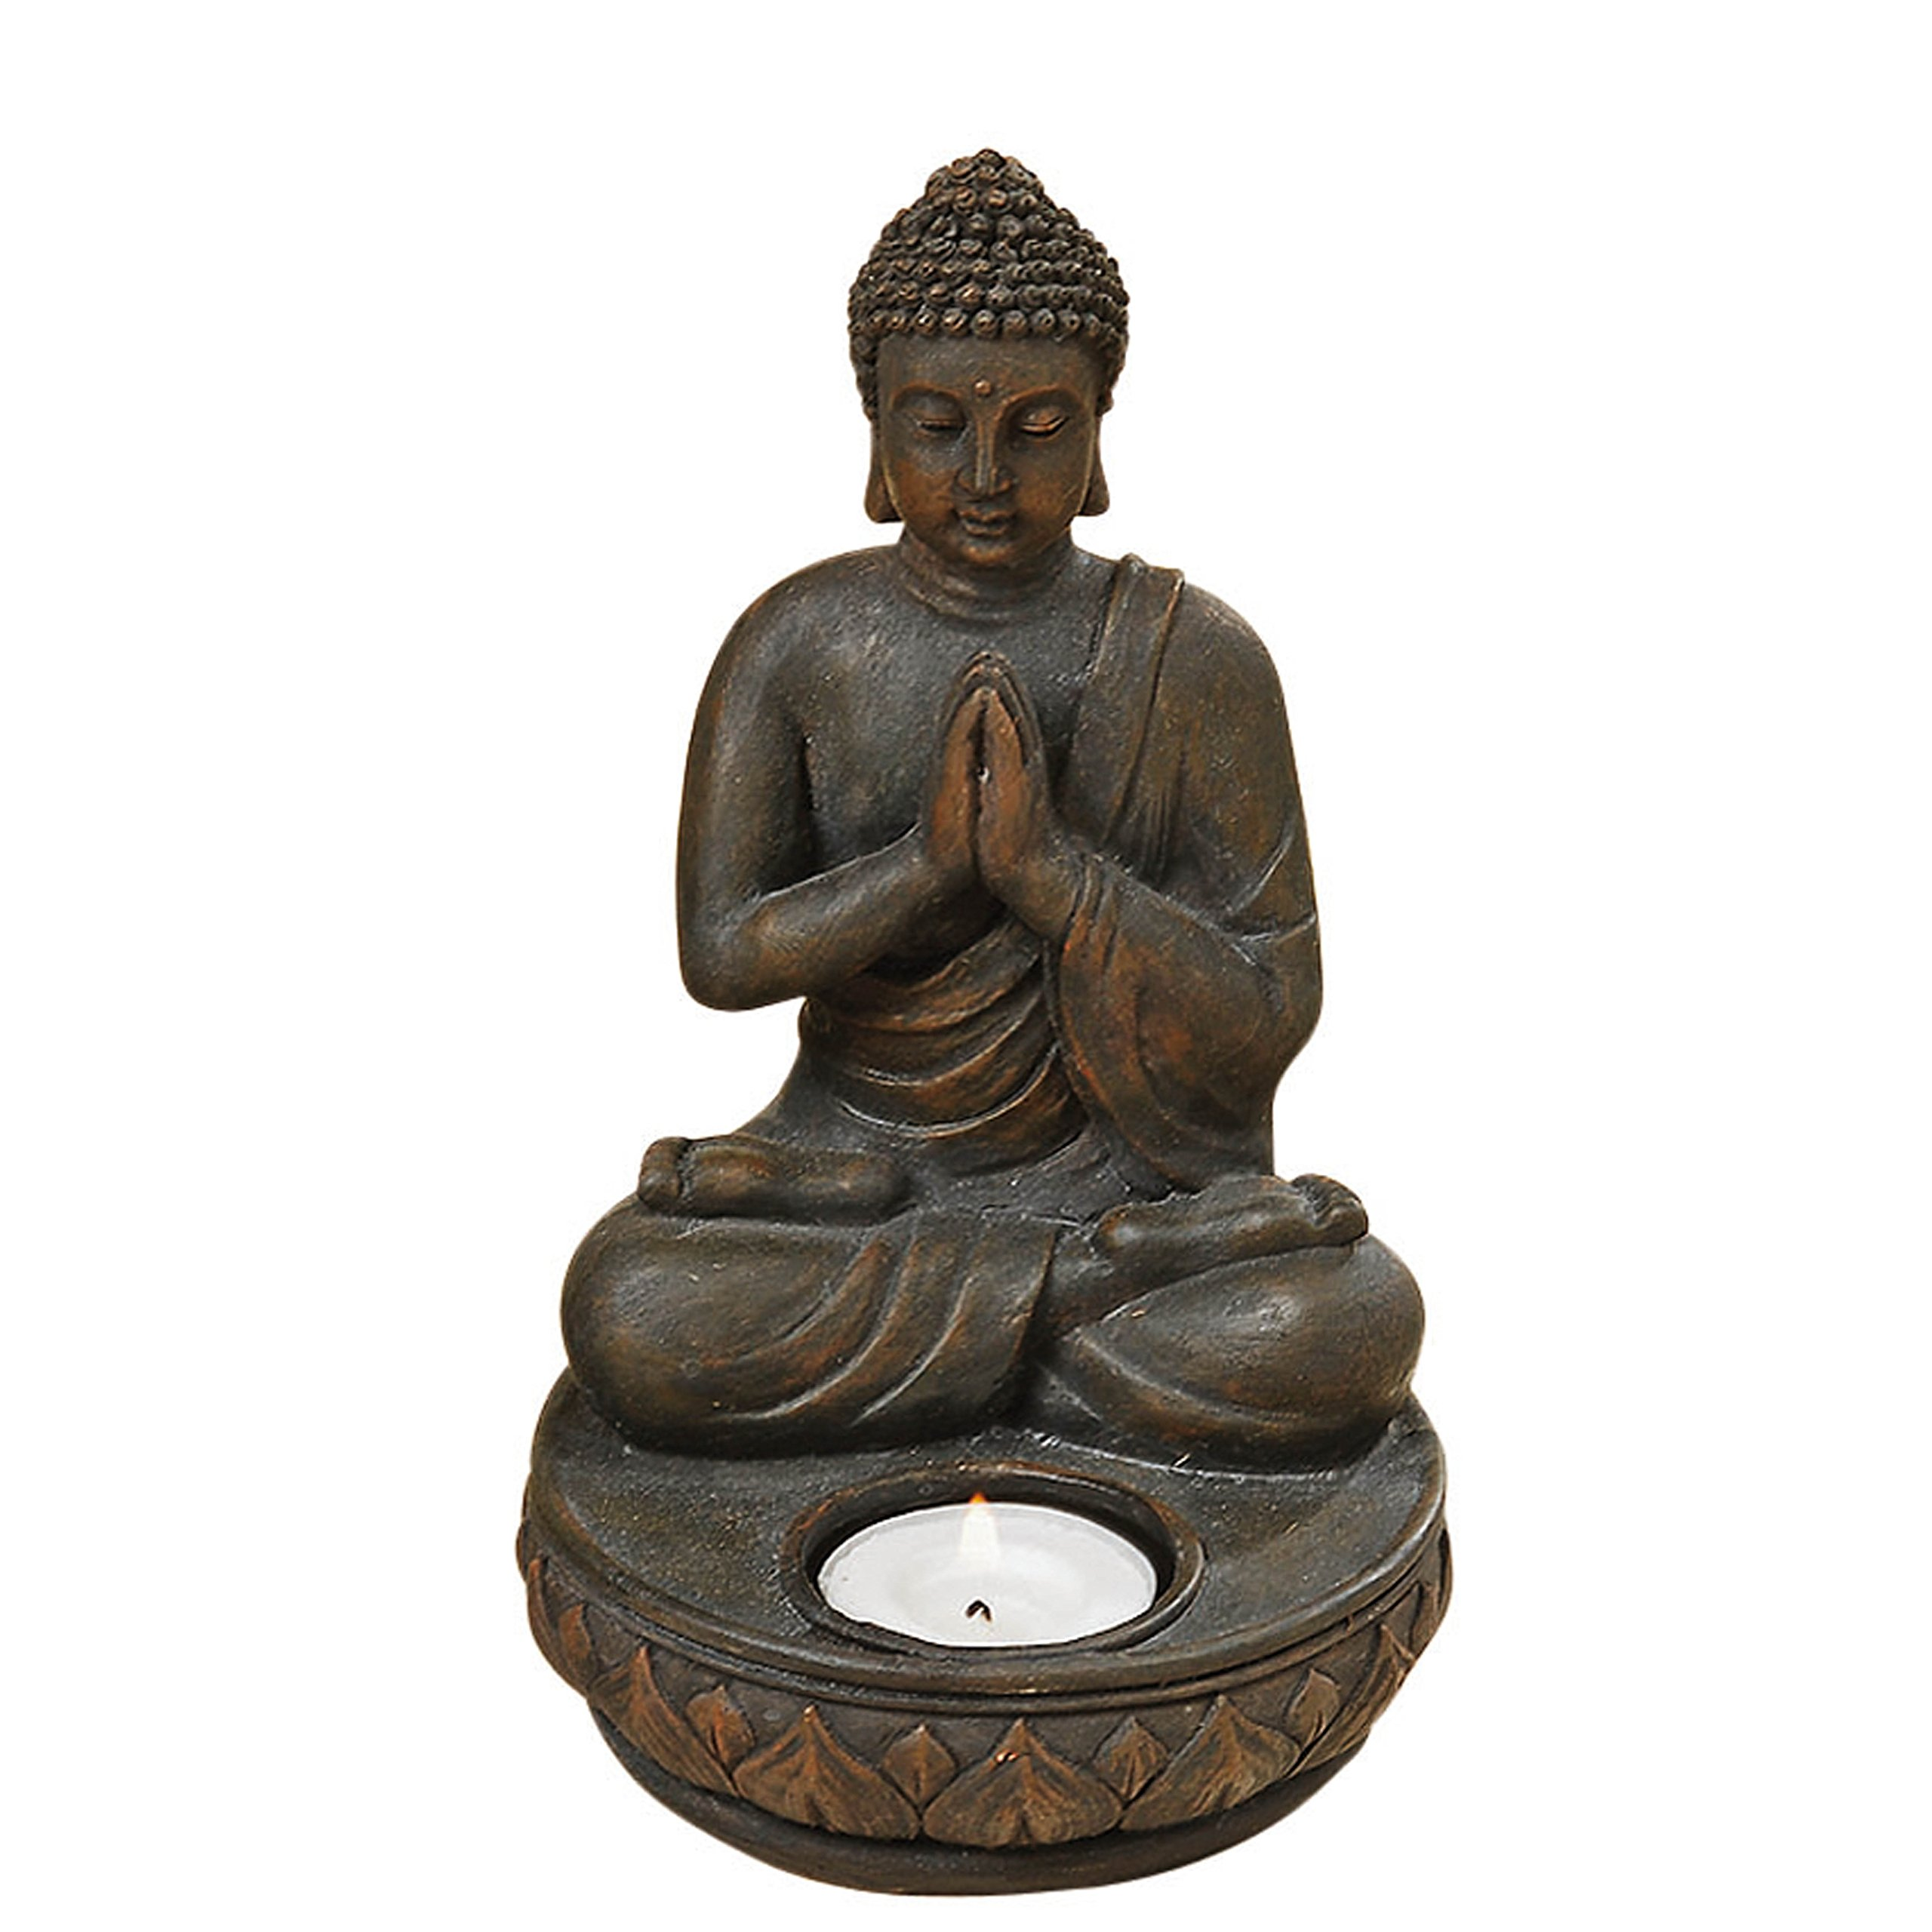 Whole House Worlds Seated Buddha Tealight Candle Holder in The Greeting or Namaste Pose, Lotus Base, 7 1/2 H x 4 3/8 Inches, Hand Crafted, Cast Polyresin, Bronze, from The Serenity Collection